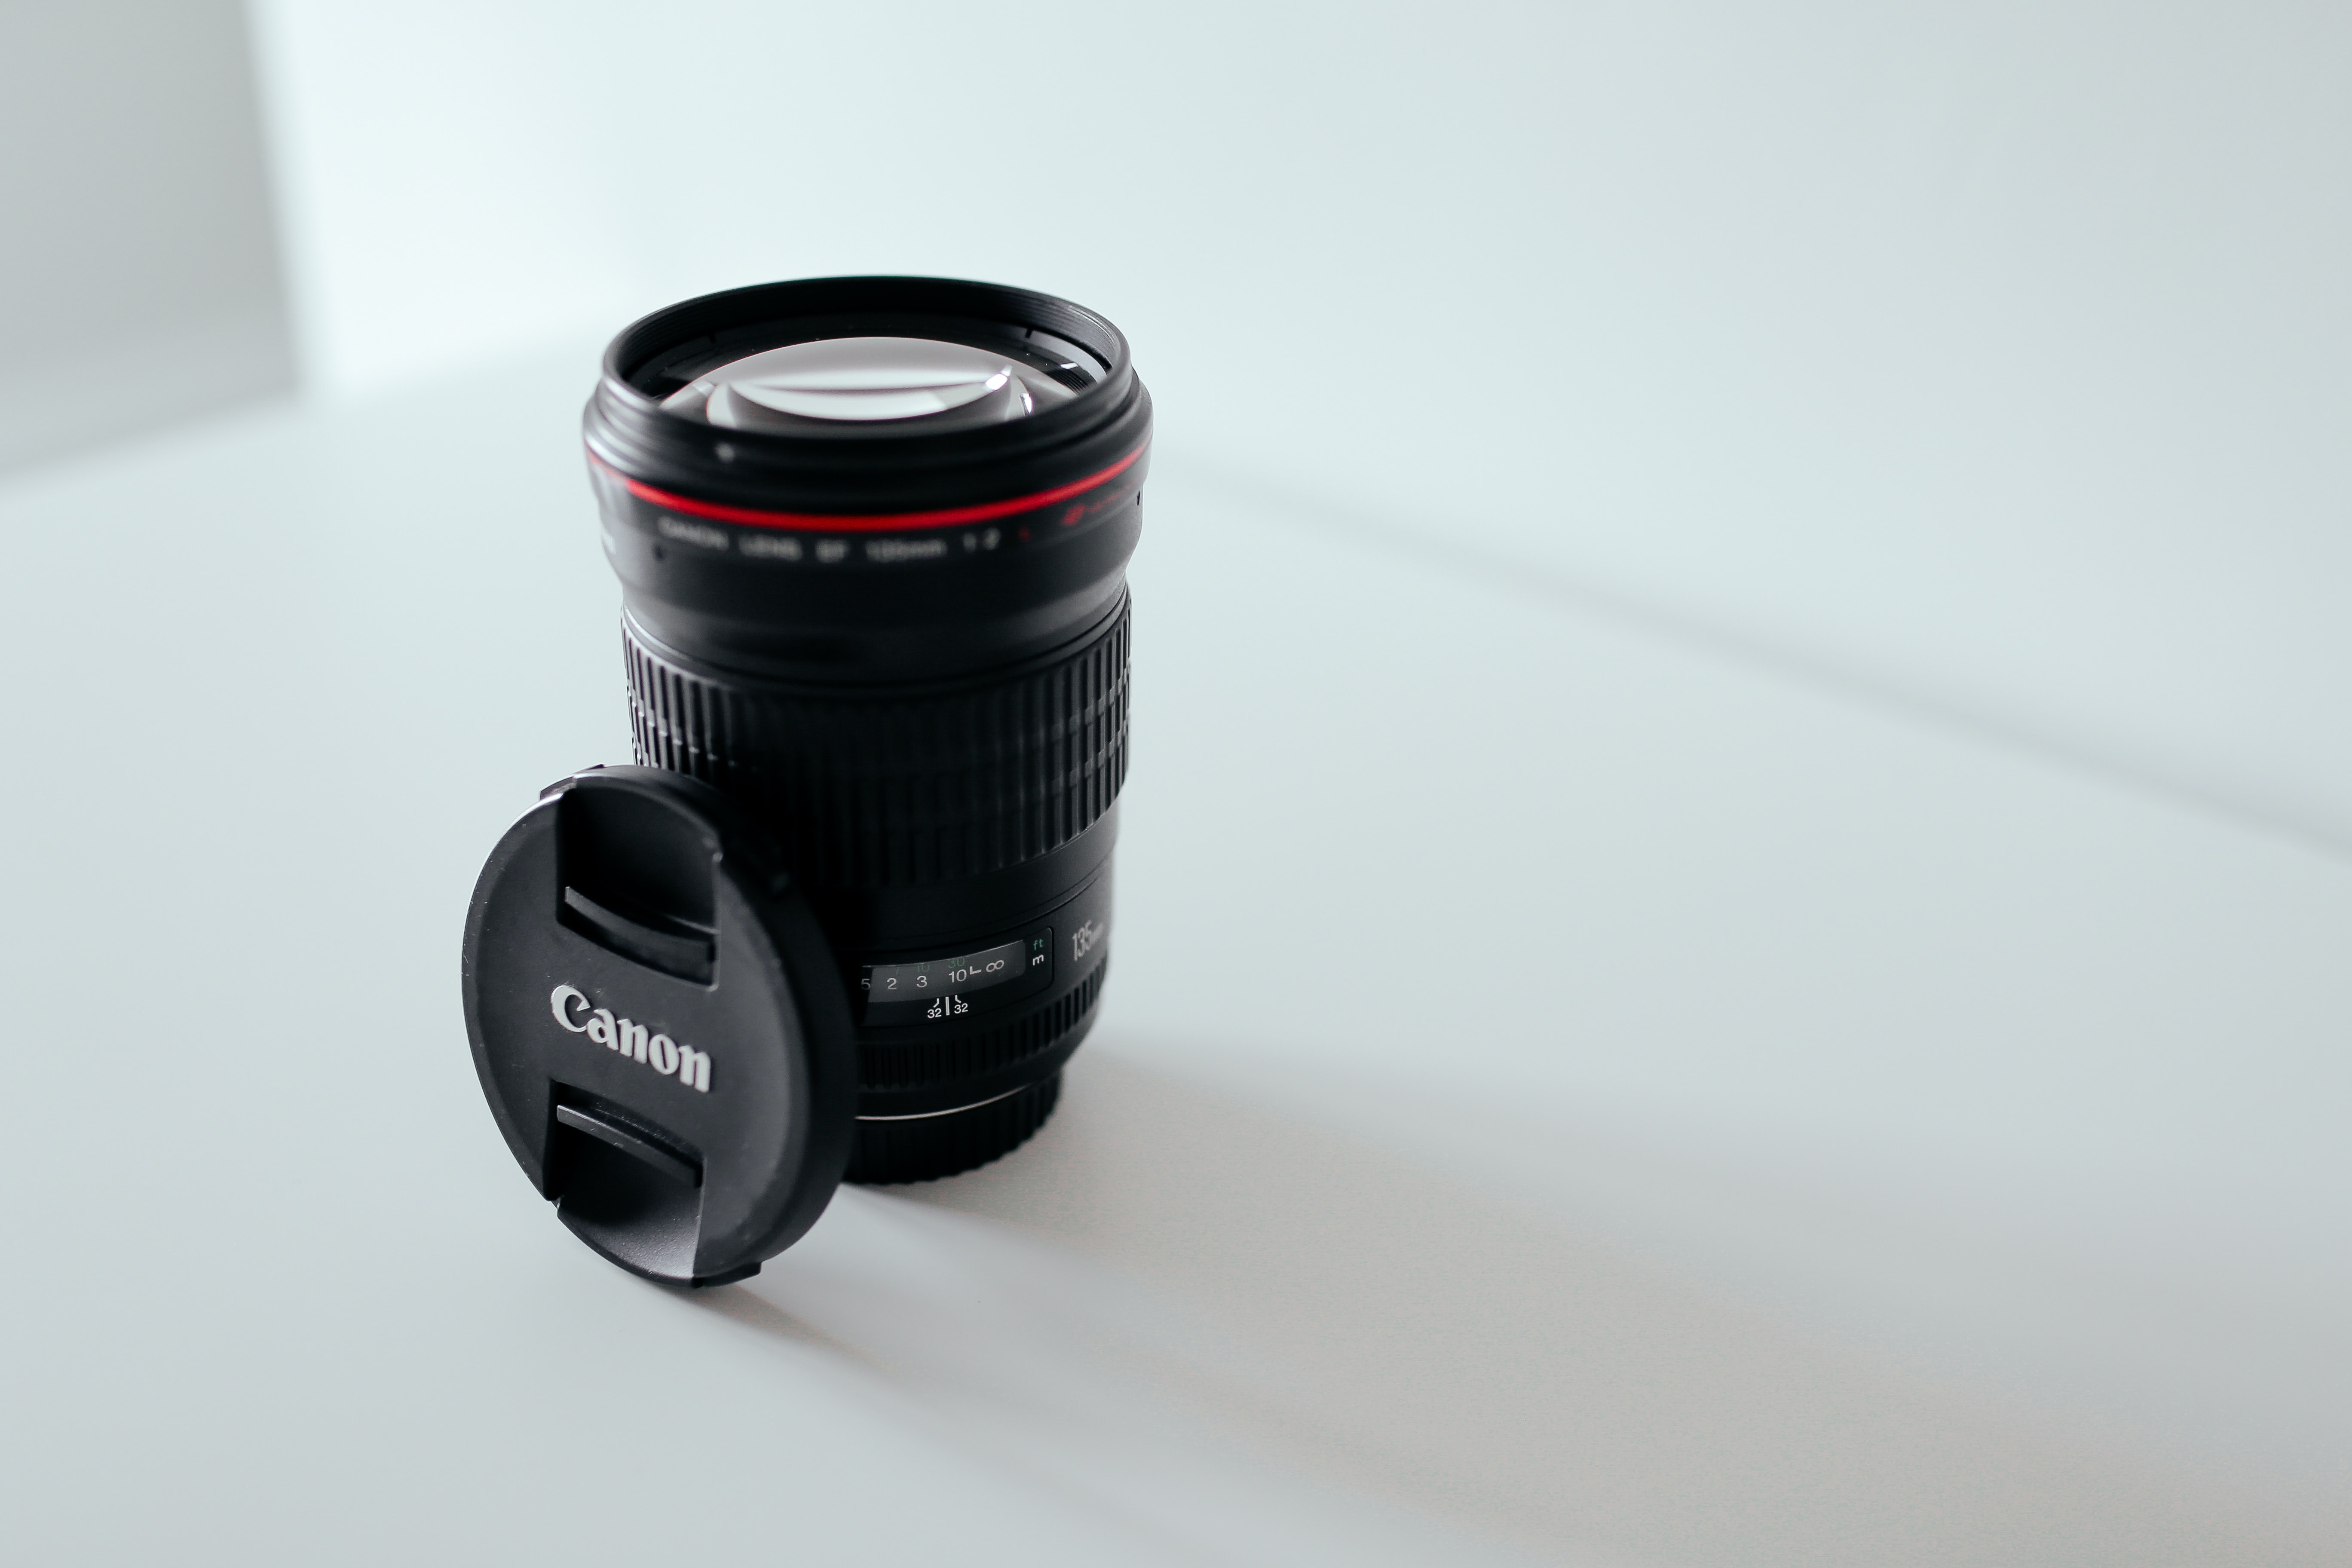 Canon camera lens with cover balancing on its side in a white room